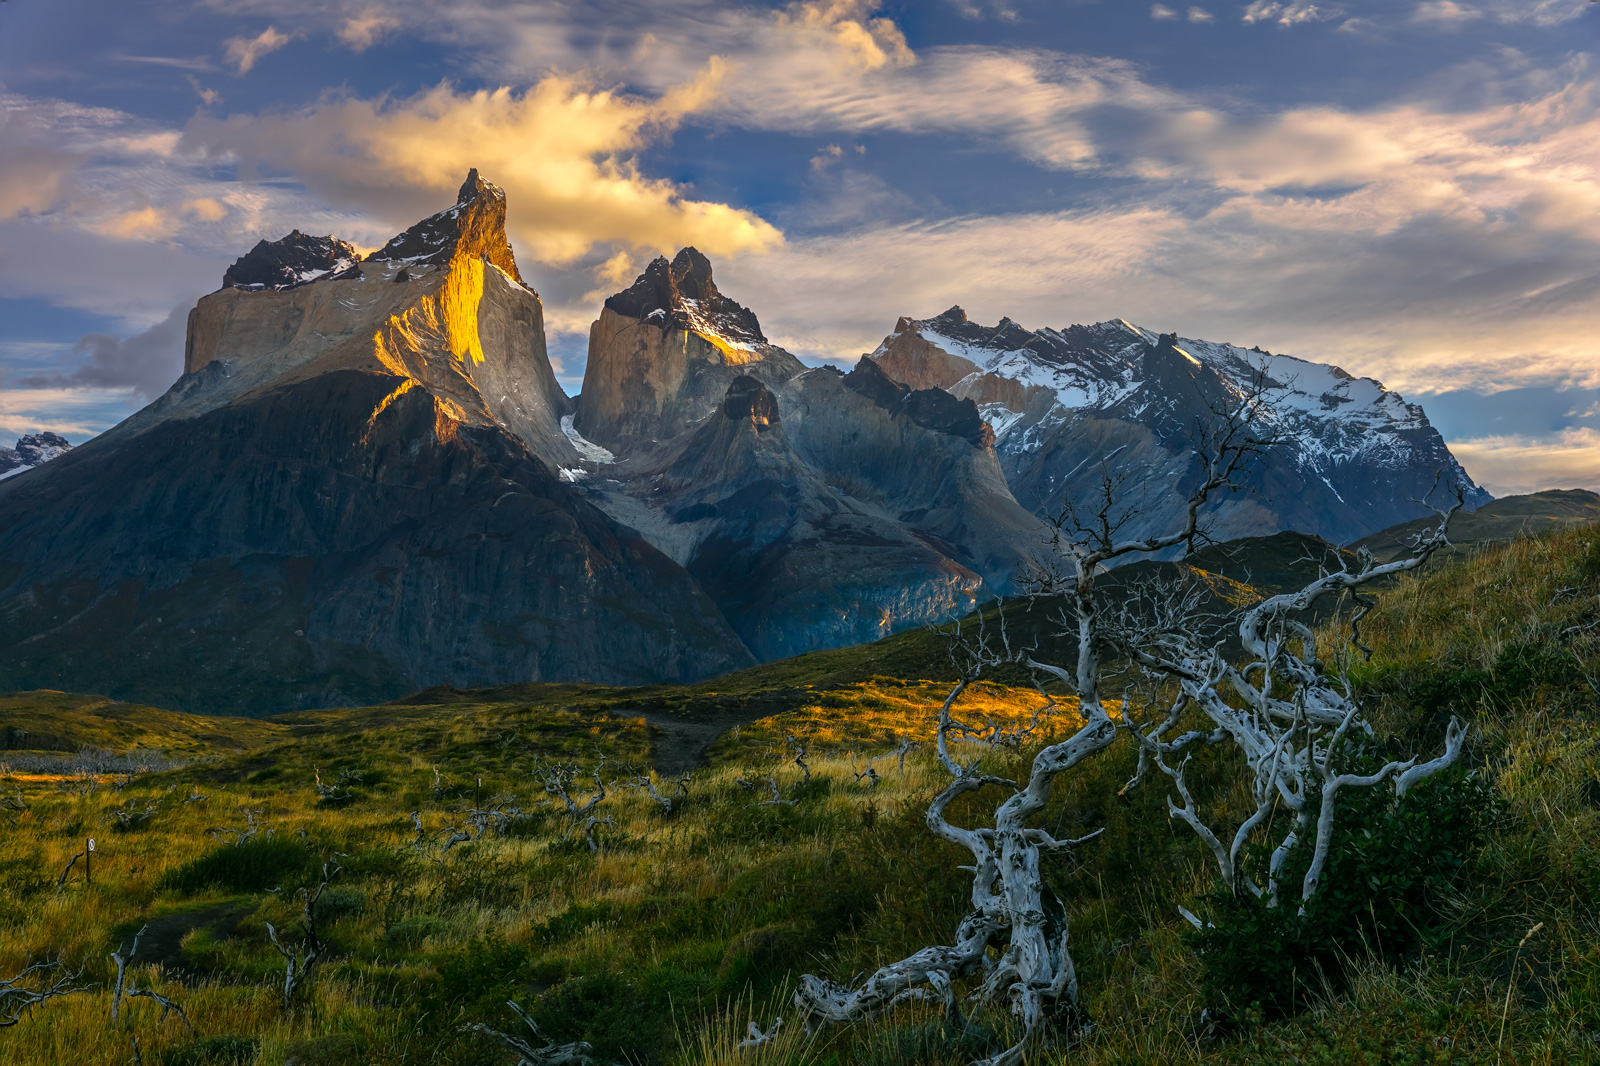 Chile, Patagonia, Torres del Paine, Mountains, limited edition, photograph, fine art, landscape, photo